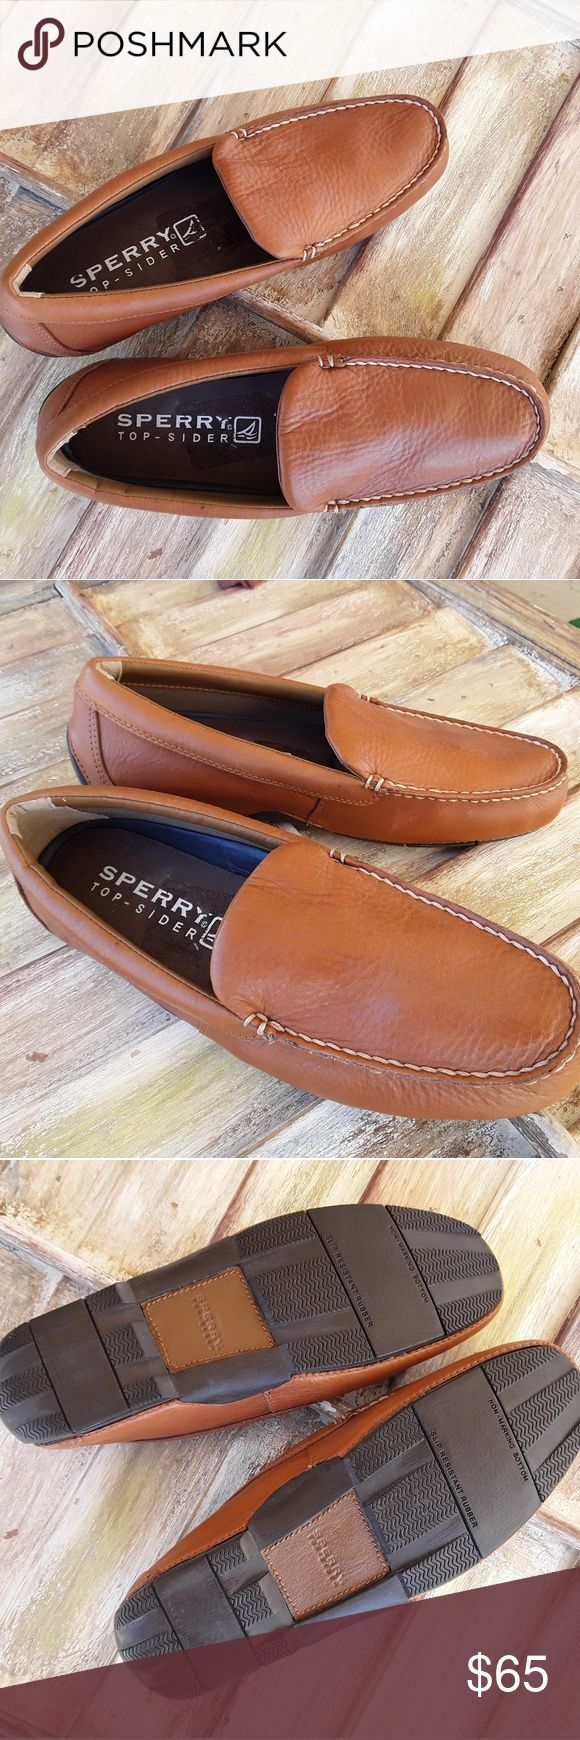 Sperry Top Sider Mens Casual Shoes.  Size 11 M Sperry Top Sider Mens Casual Shoes; medium Camel Brown in color (Sahara); Size 11 M. Nice and lightweight casual shoes!!!! Sperry Shoes Loafers & Slip-Ons